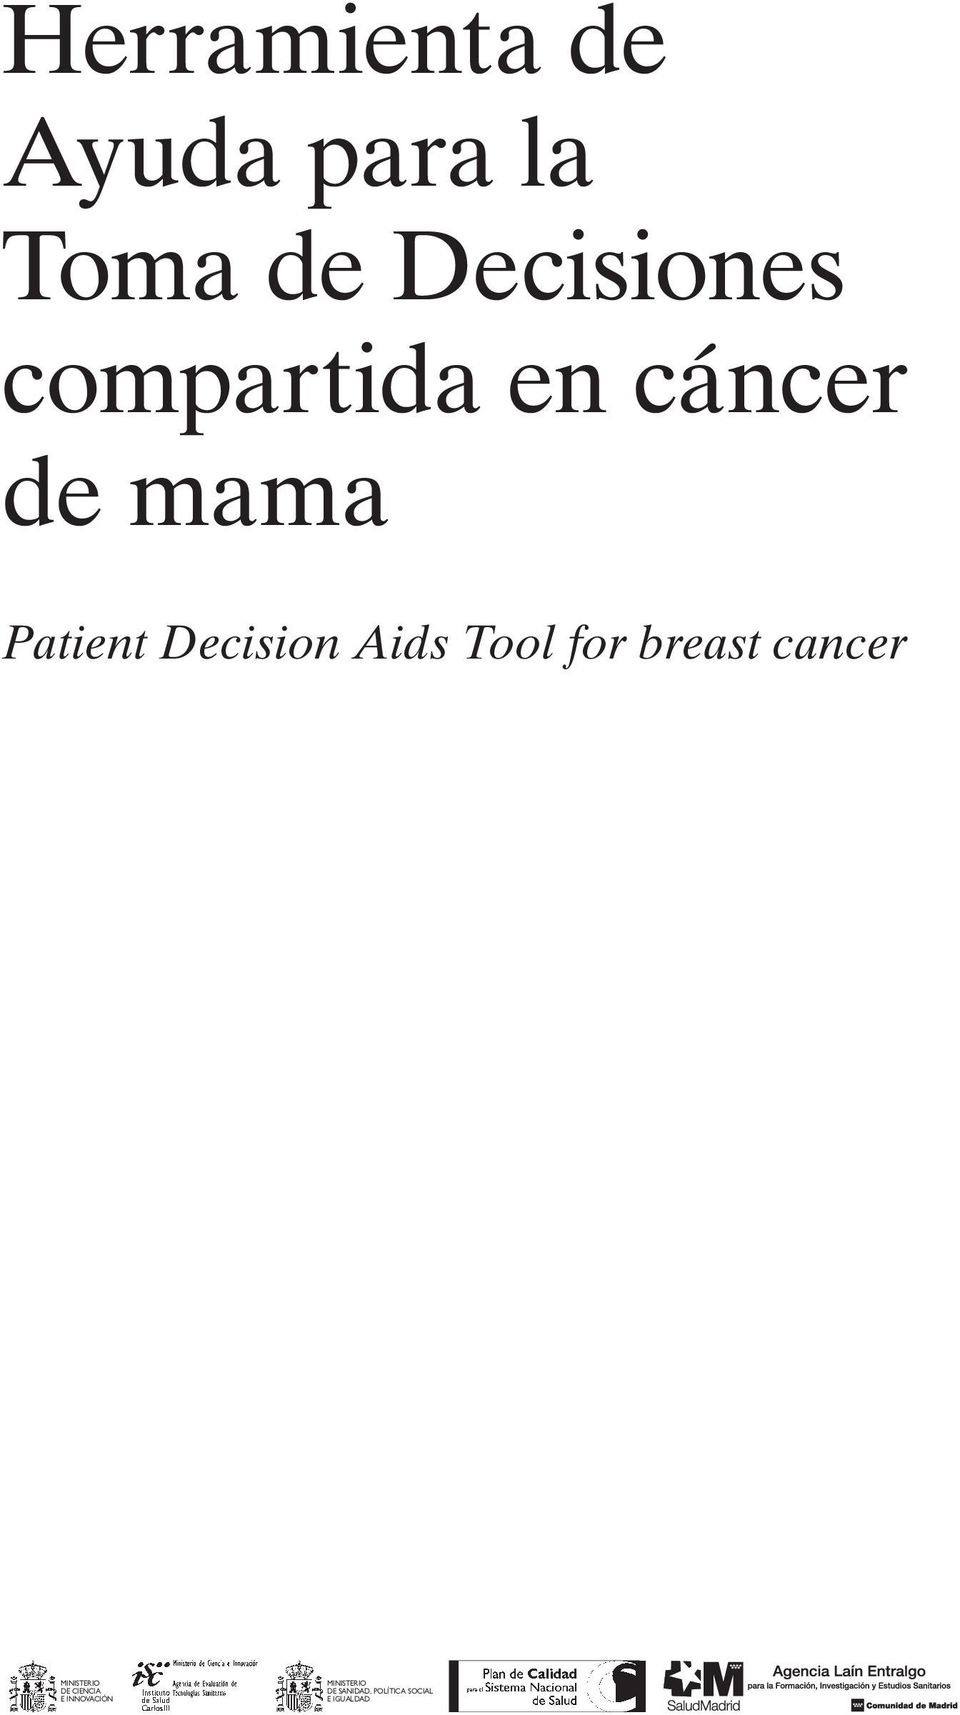 PatientDecisionAidsToolforbreastcancer DE